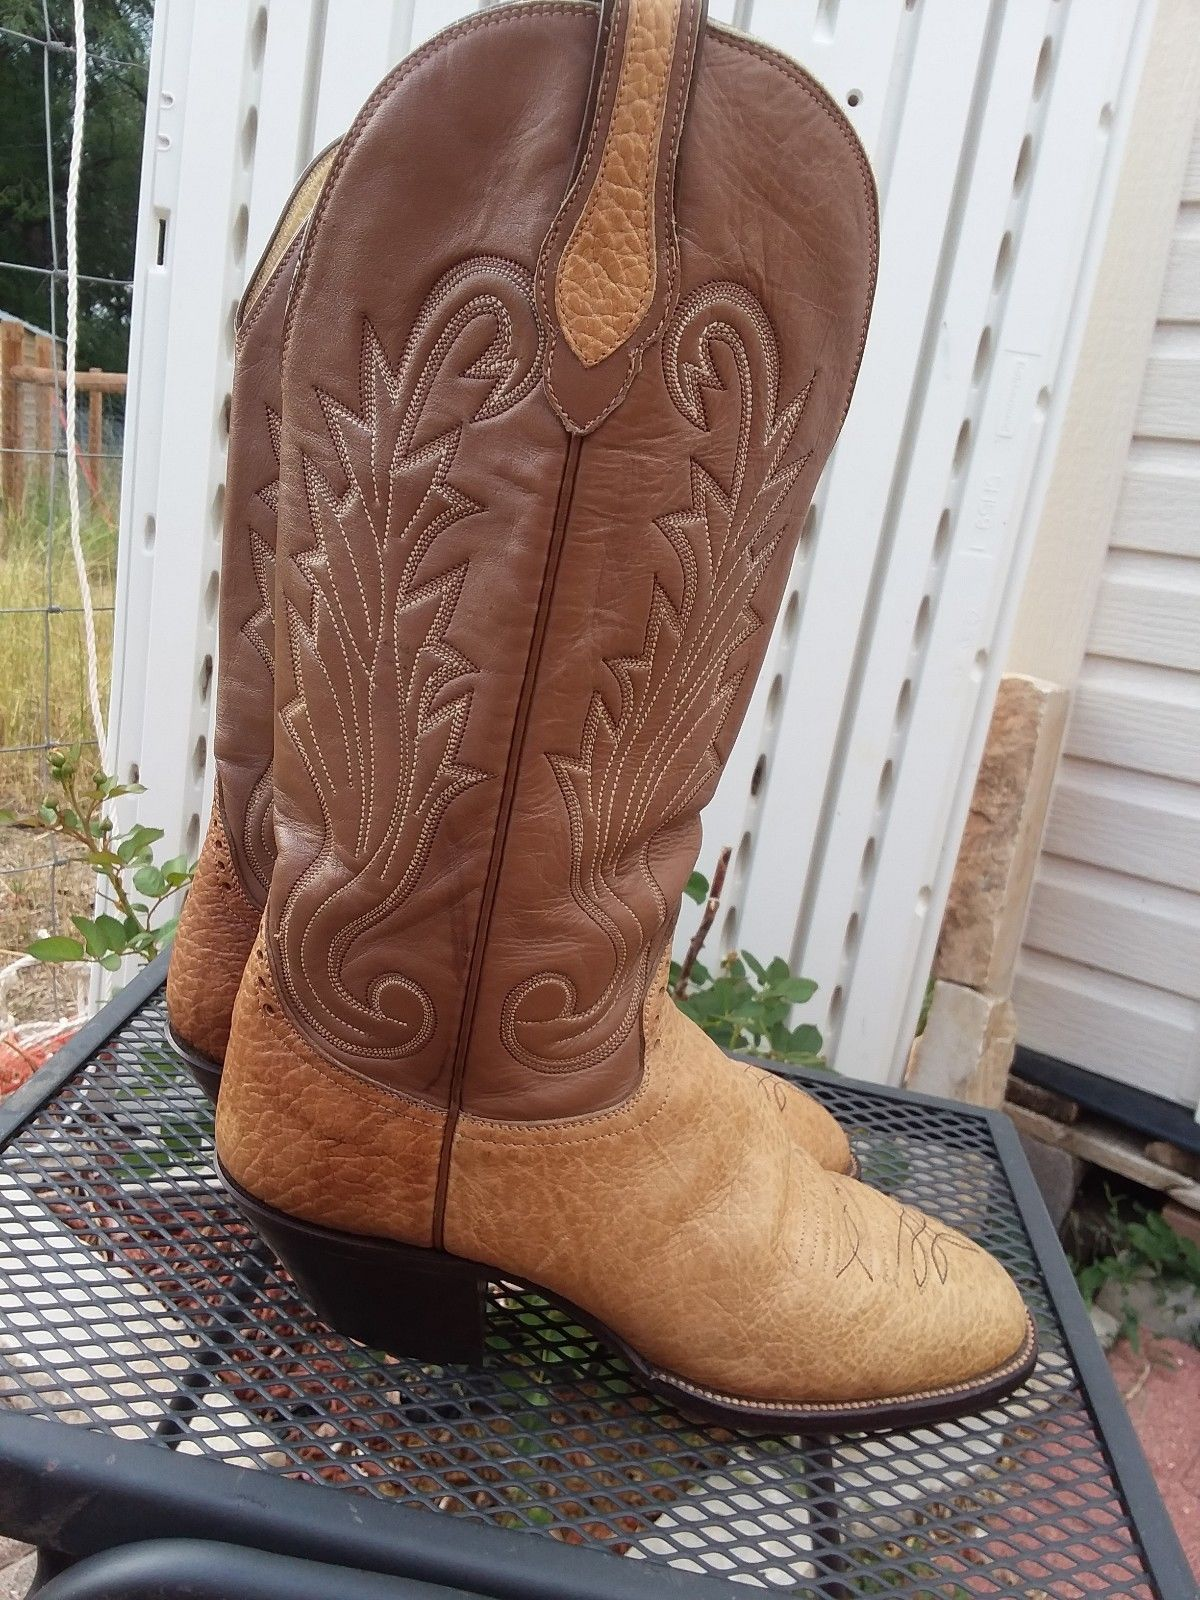 7703e7548f0 Hondo Women's Brown/Tan Western Leather Boots 2.75